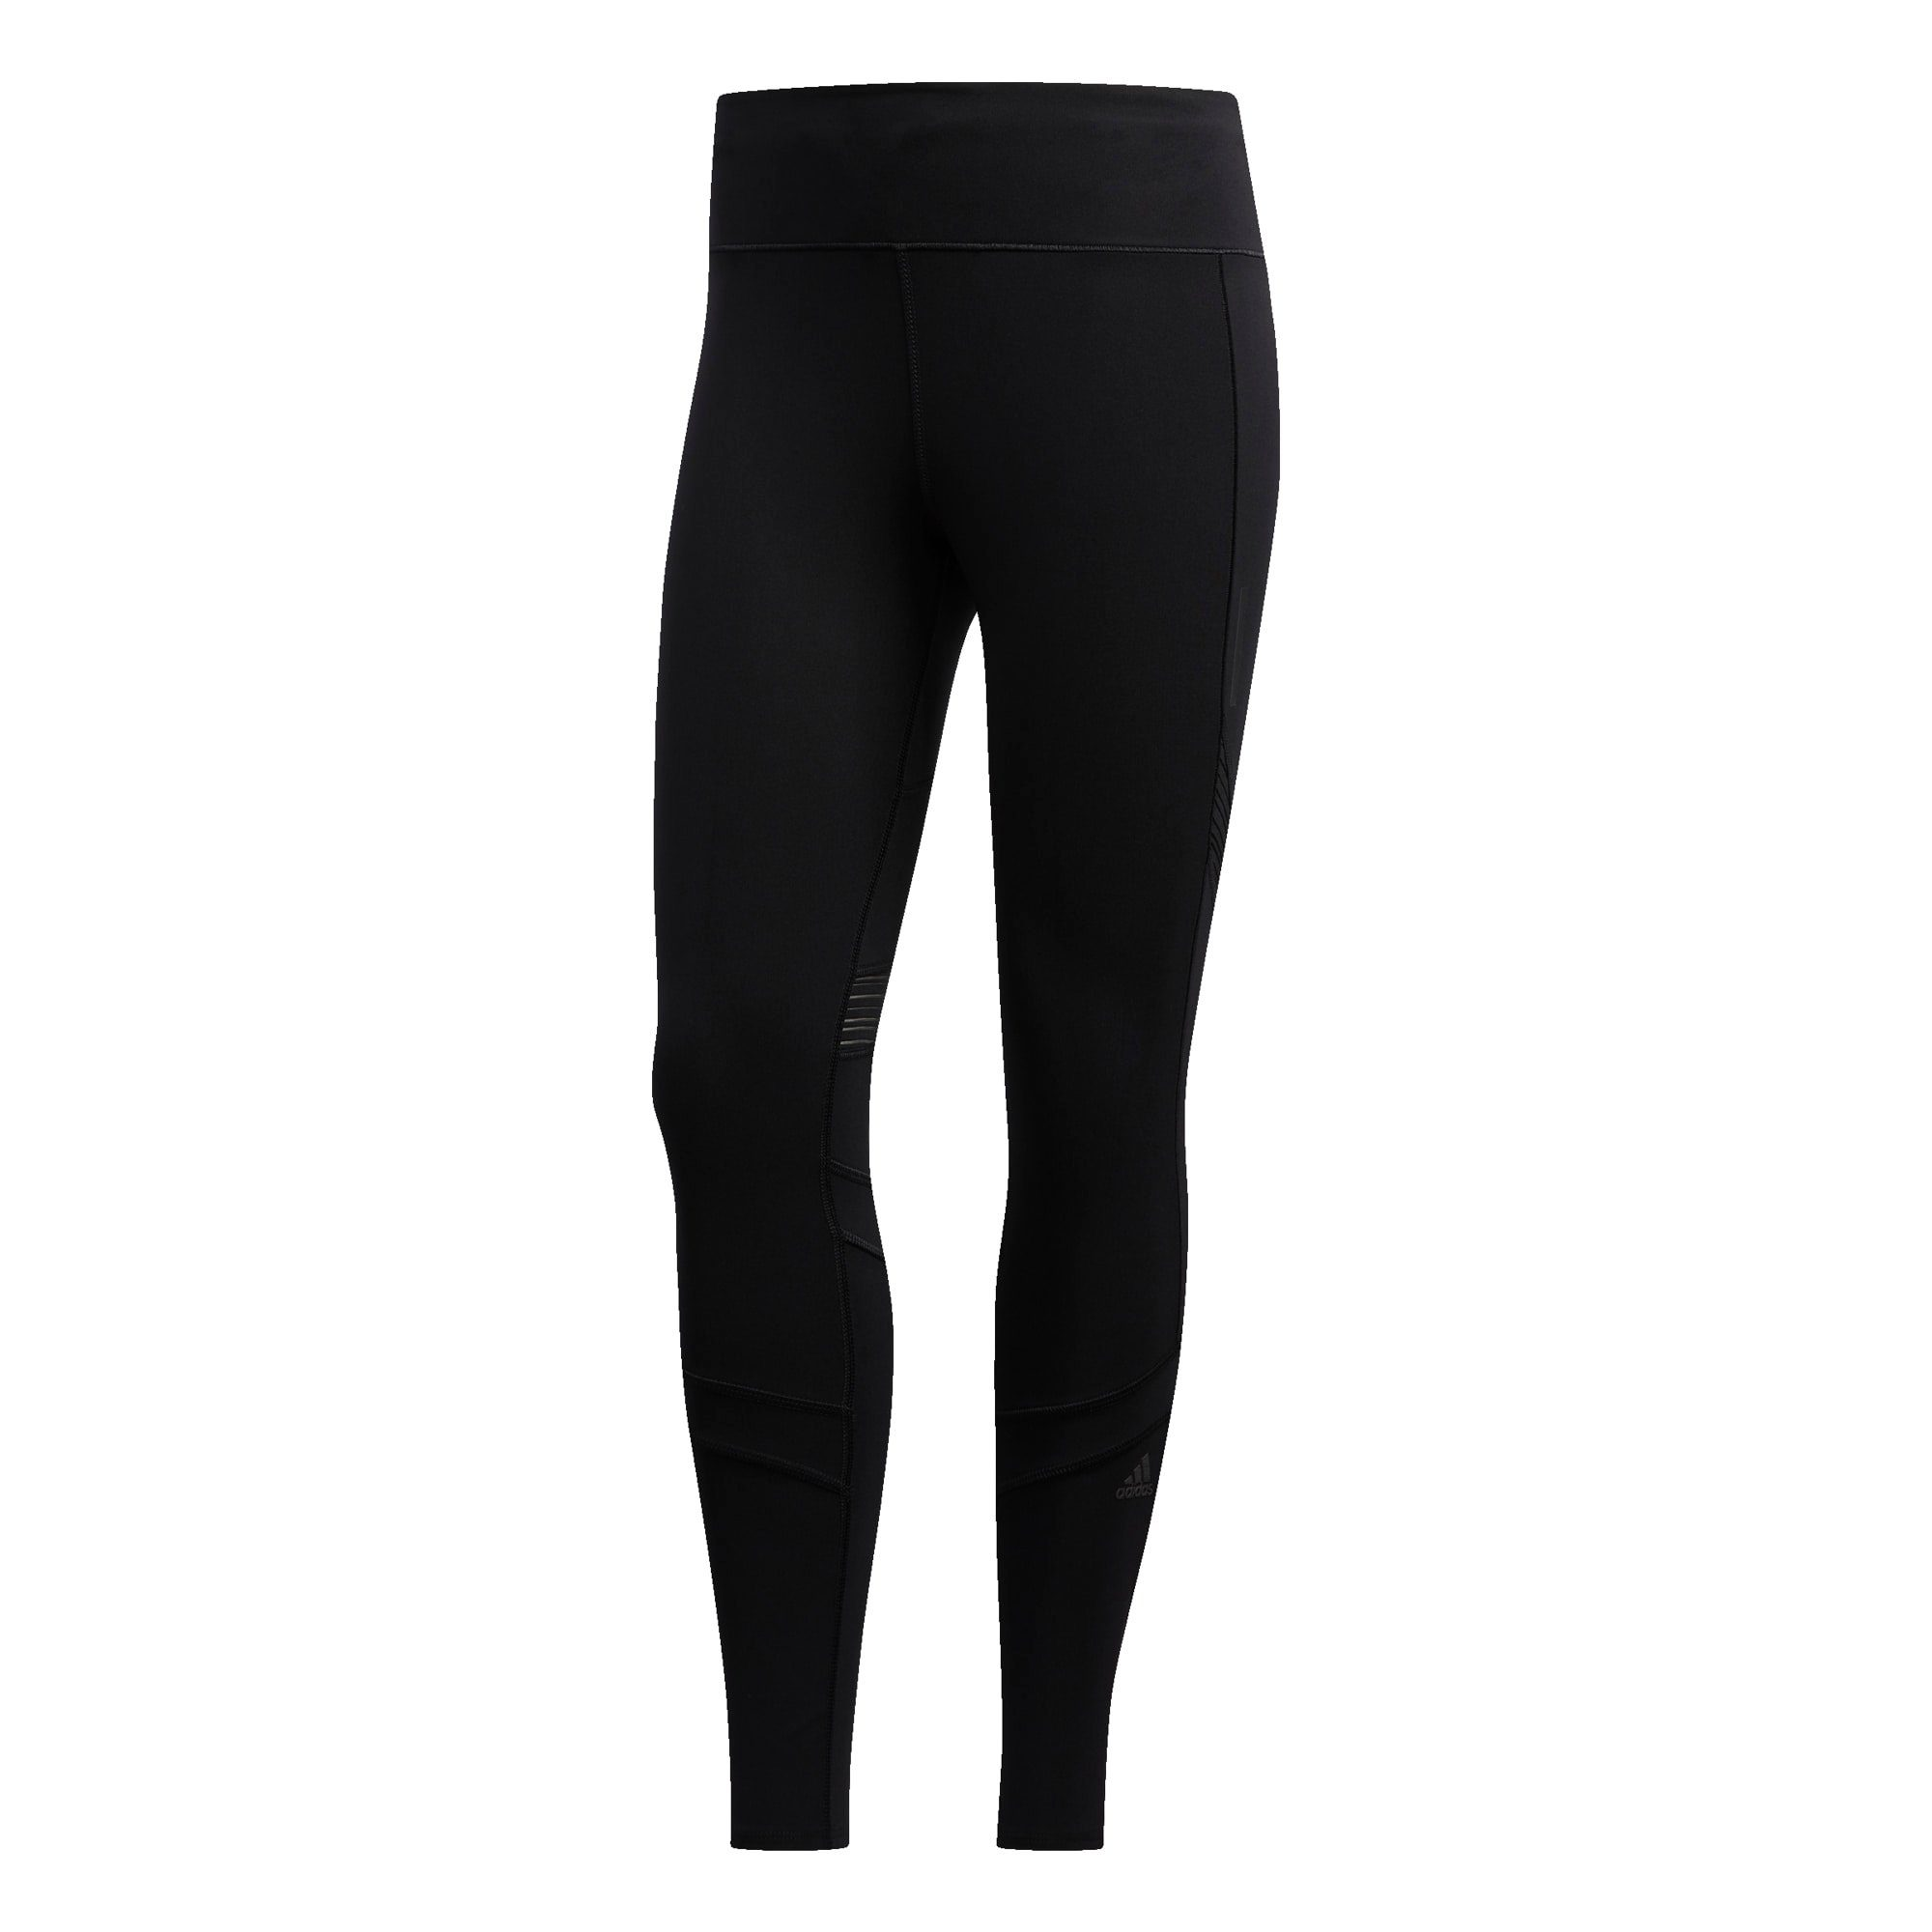 Nike Epic Run Laufhose lang (Damen) ab € 30,21